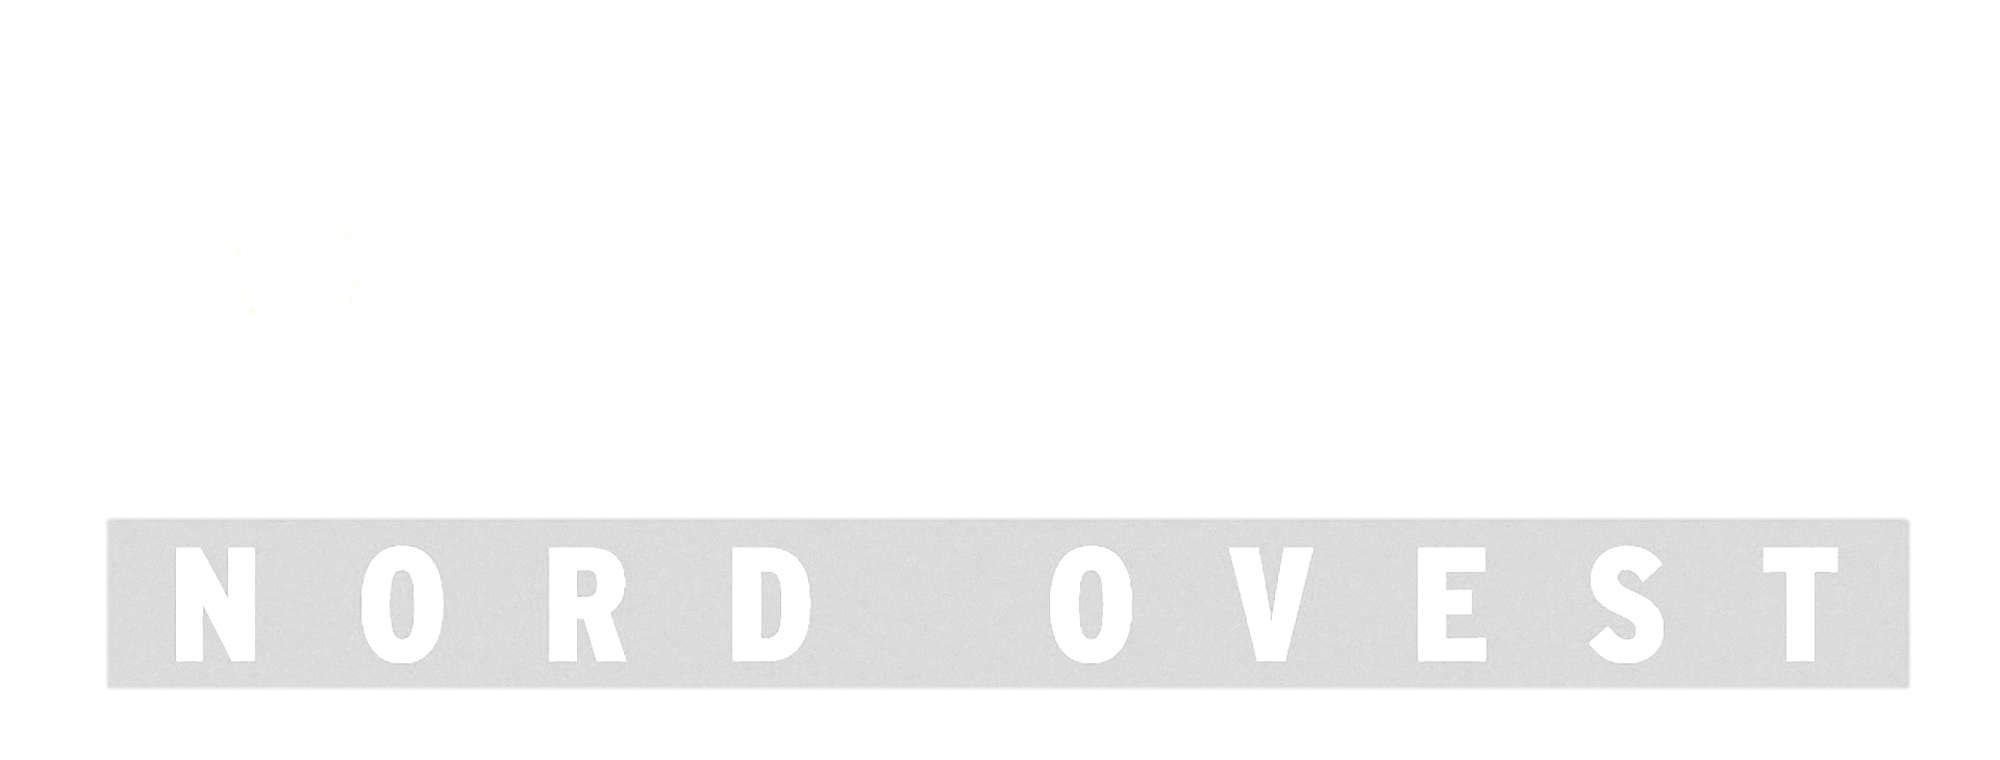 Conad-white.png